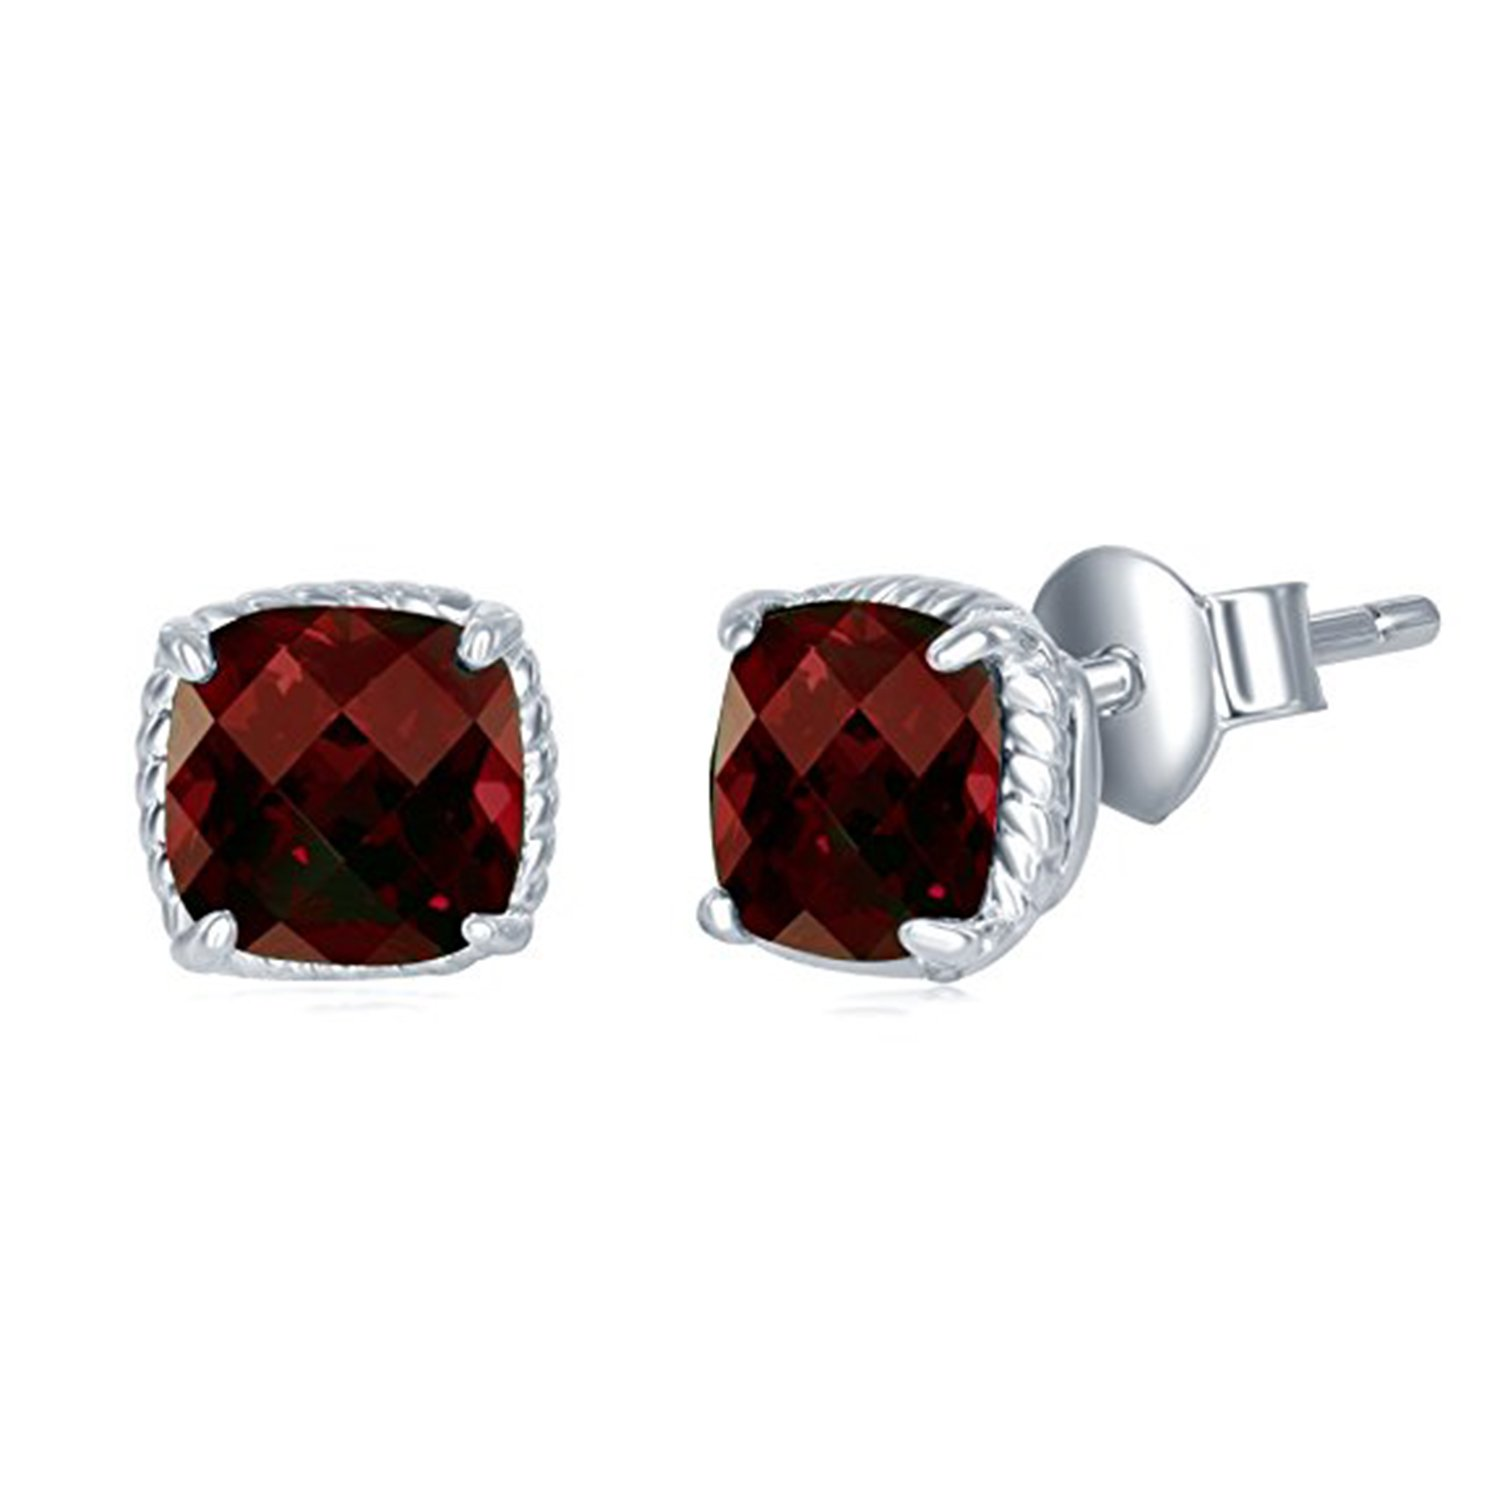 Simulated Red Ruby Studded 14K White Gold Plated Screwback Stud Earrings For Women Girls Jewelry